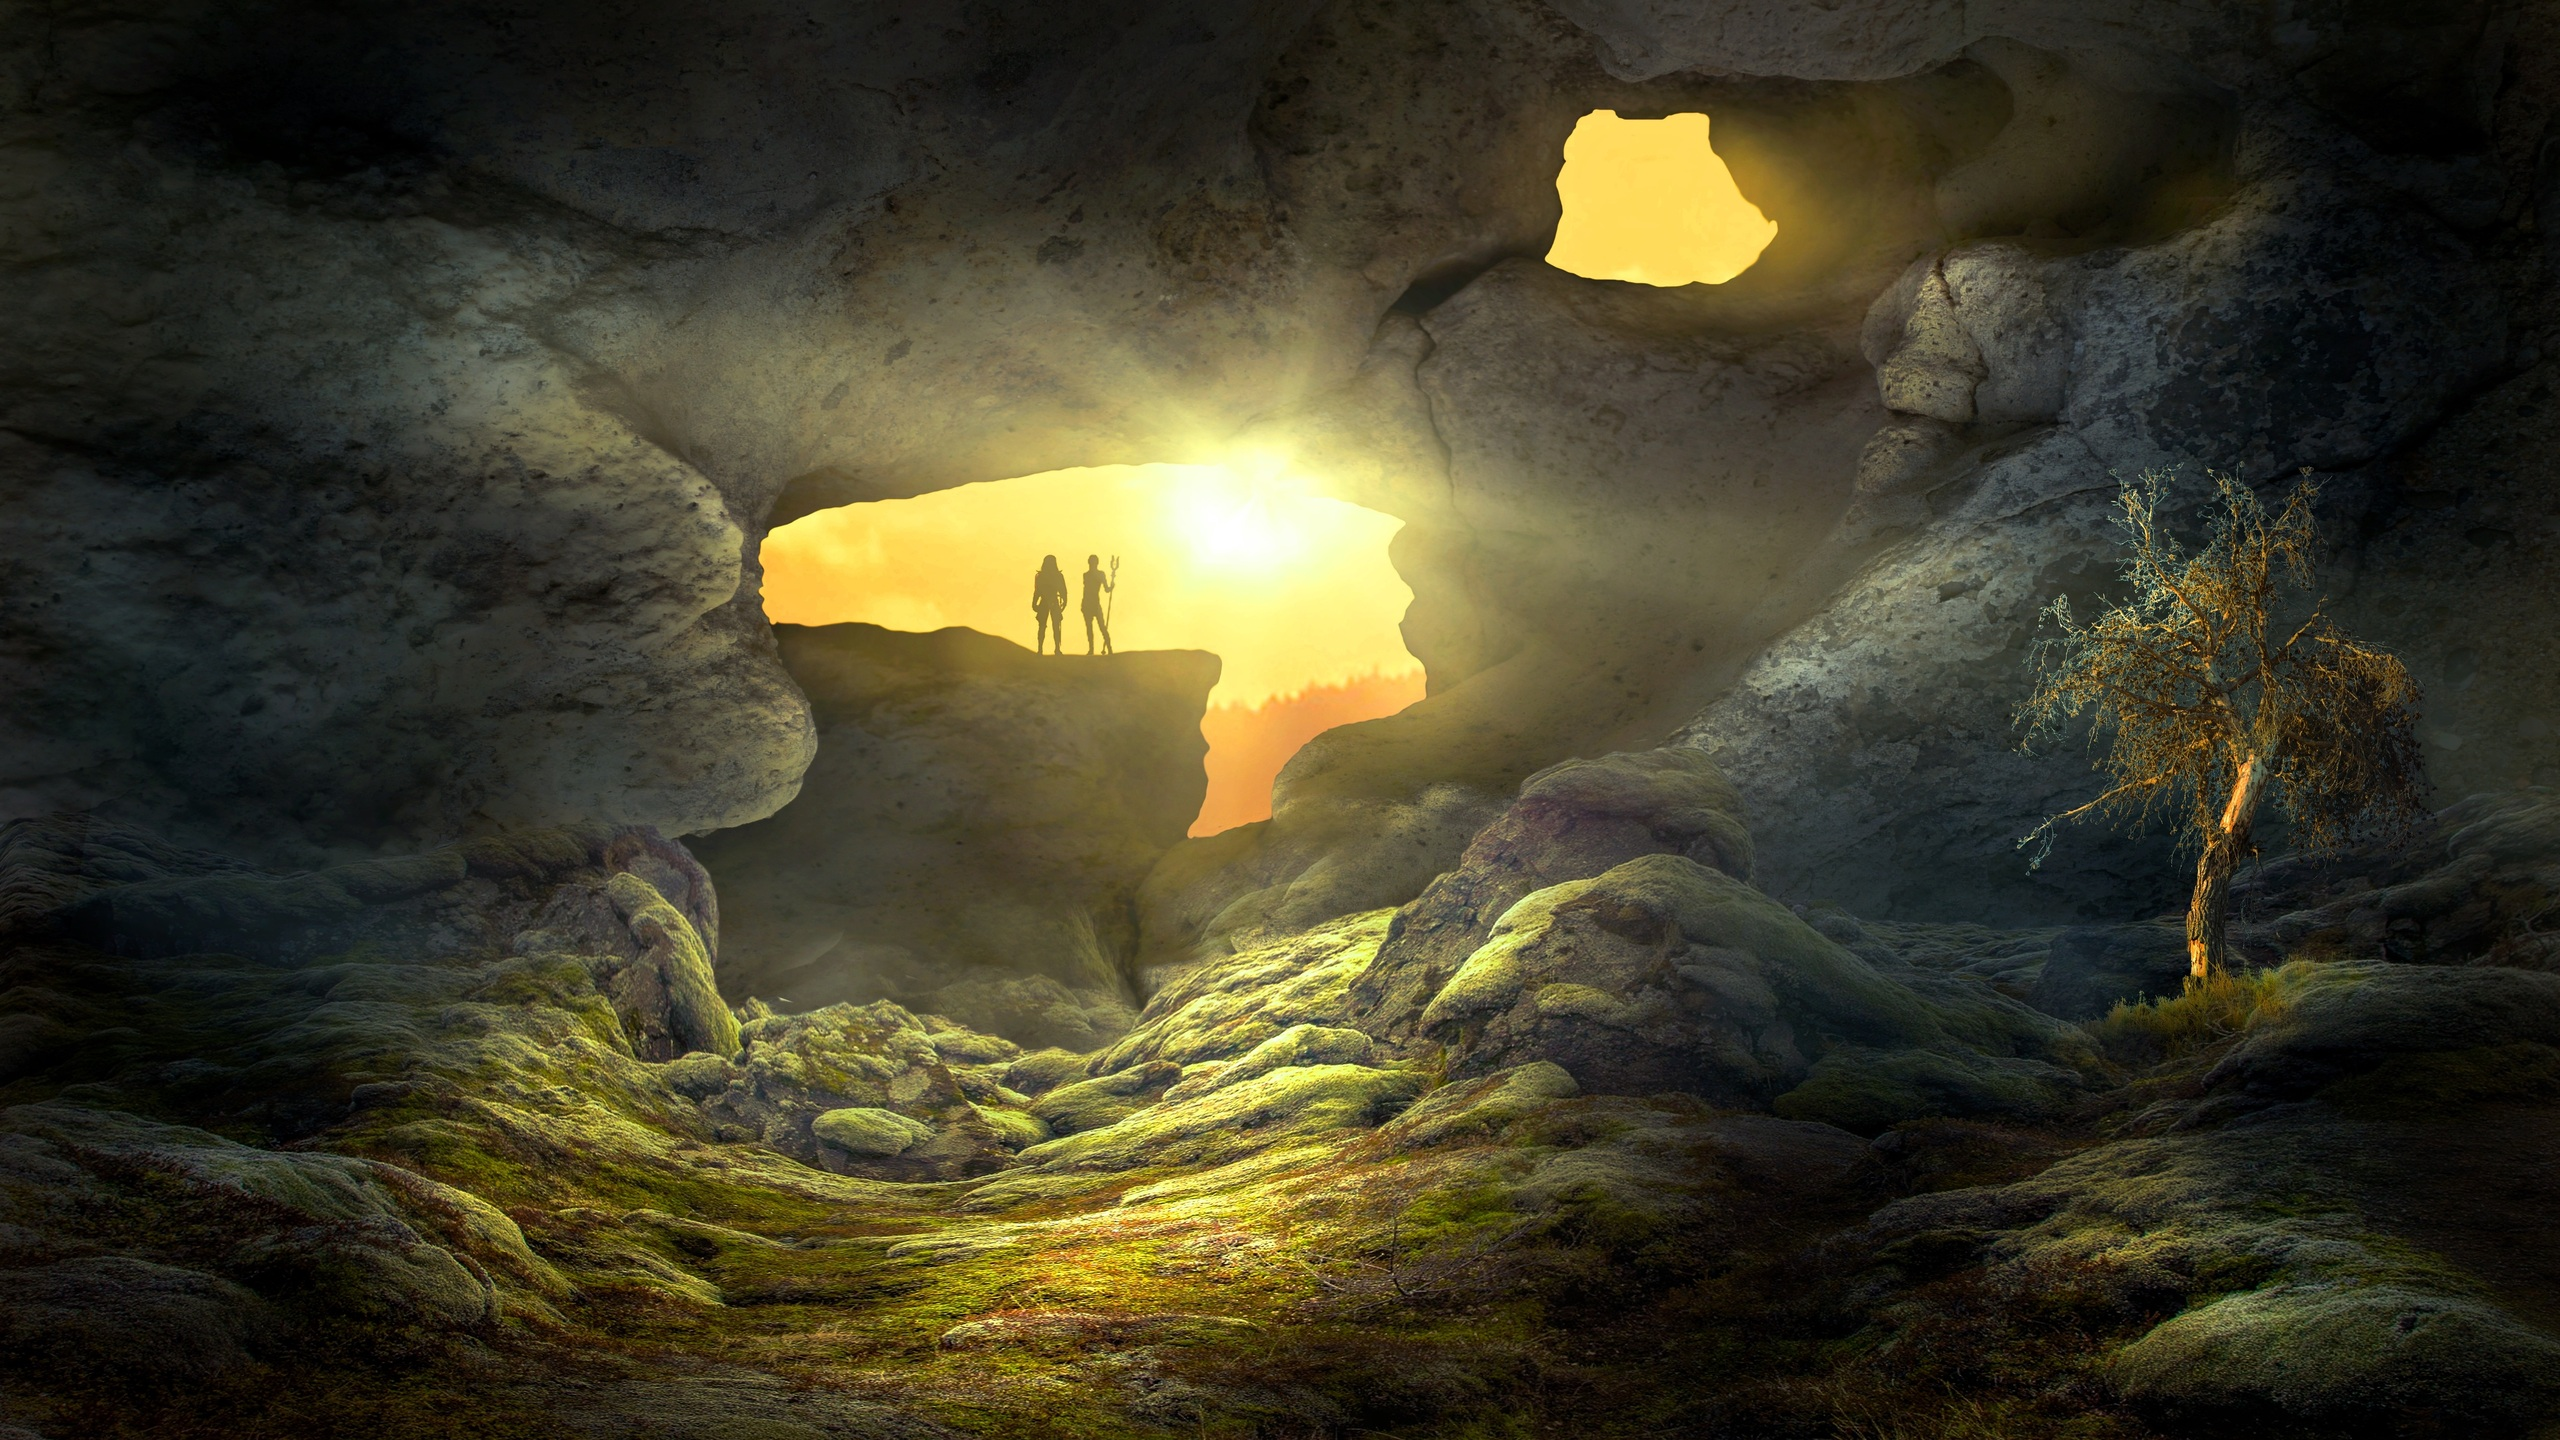 2560x1440 fantasy landscape cave human 1440p resolution hd 4k